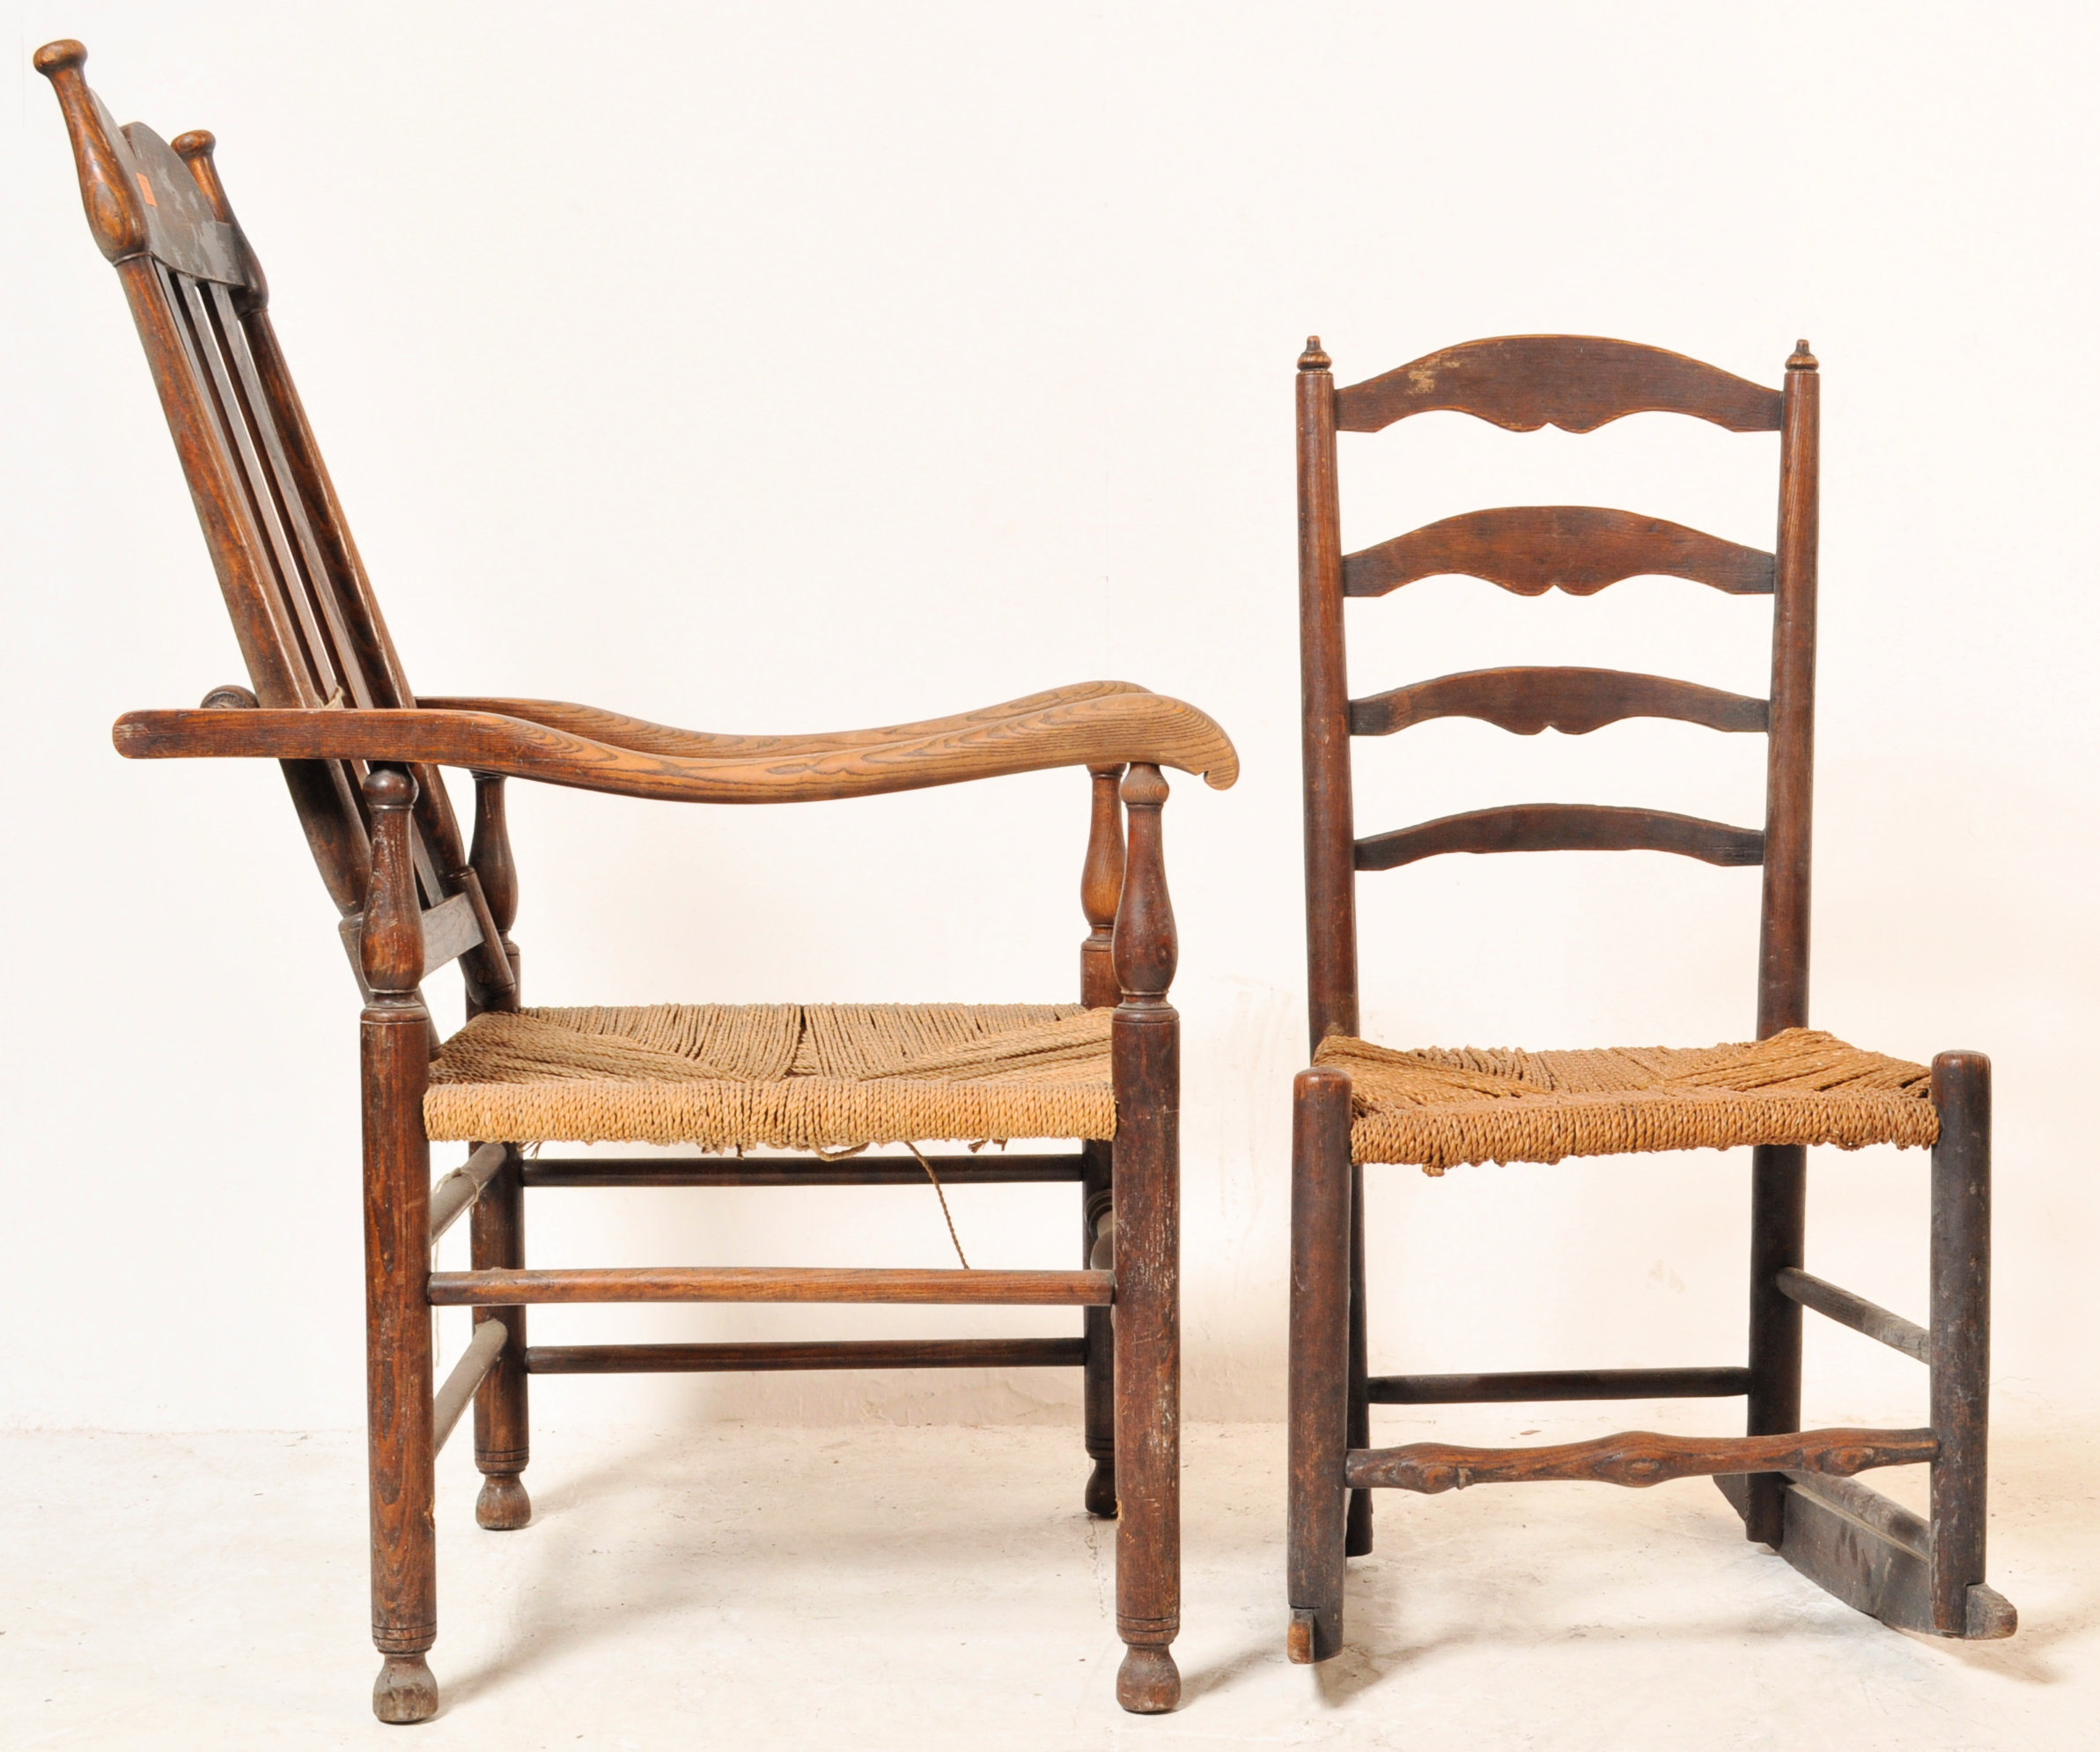 GEORGE II 18TH CENTURY RECLINING NORTH COUNTRY CHAIR WITH ANOTHER - Image 2 of 7